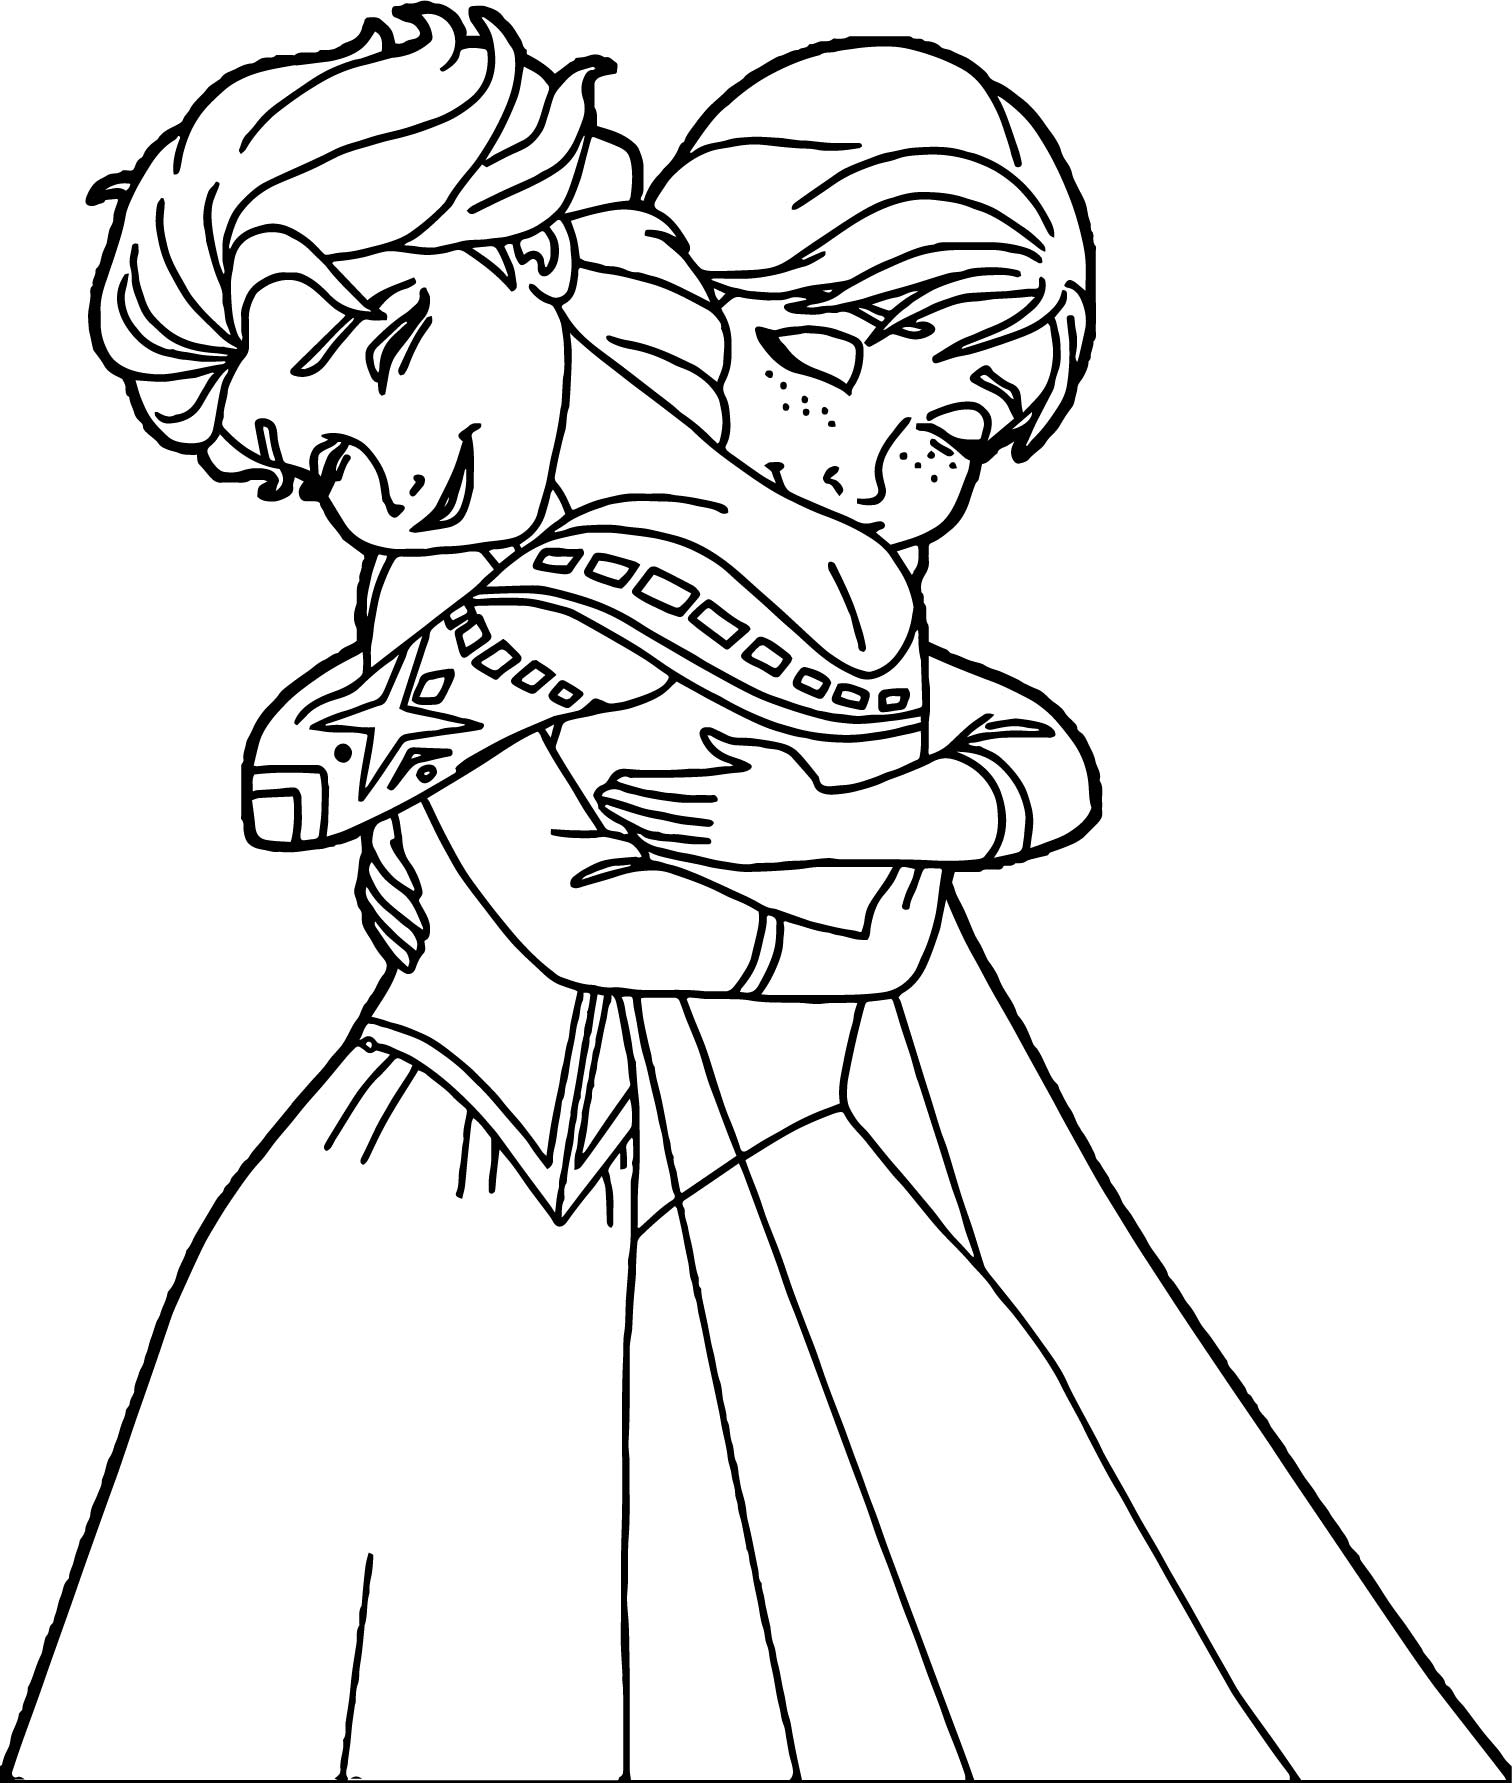 Elsa anna hugging coloring page for Elsa and anna coloring page